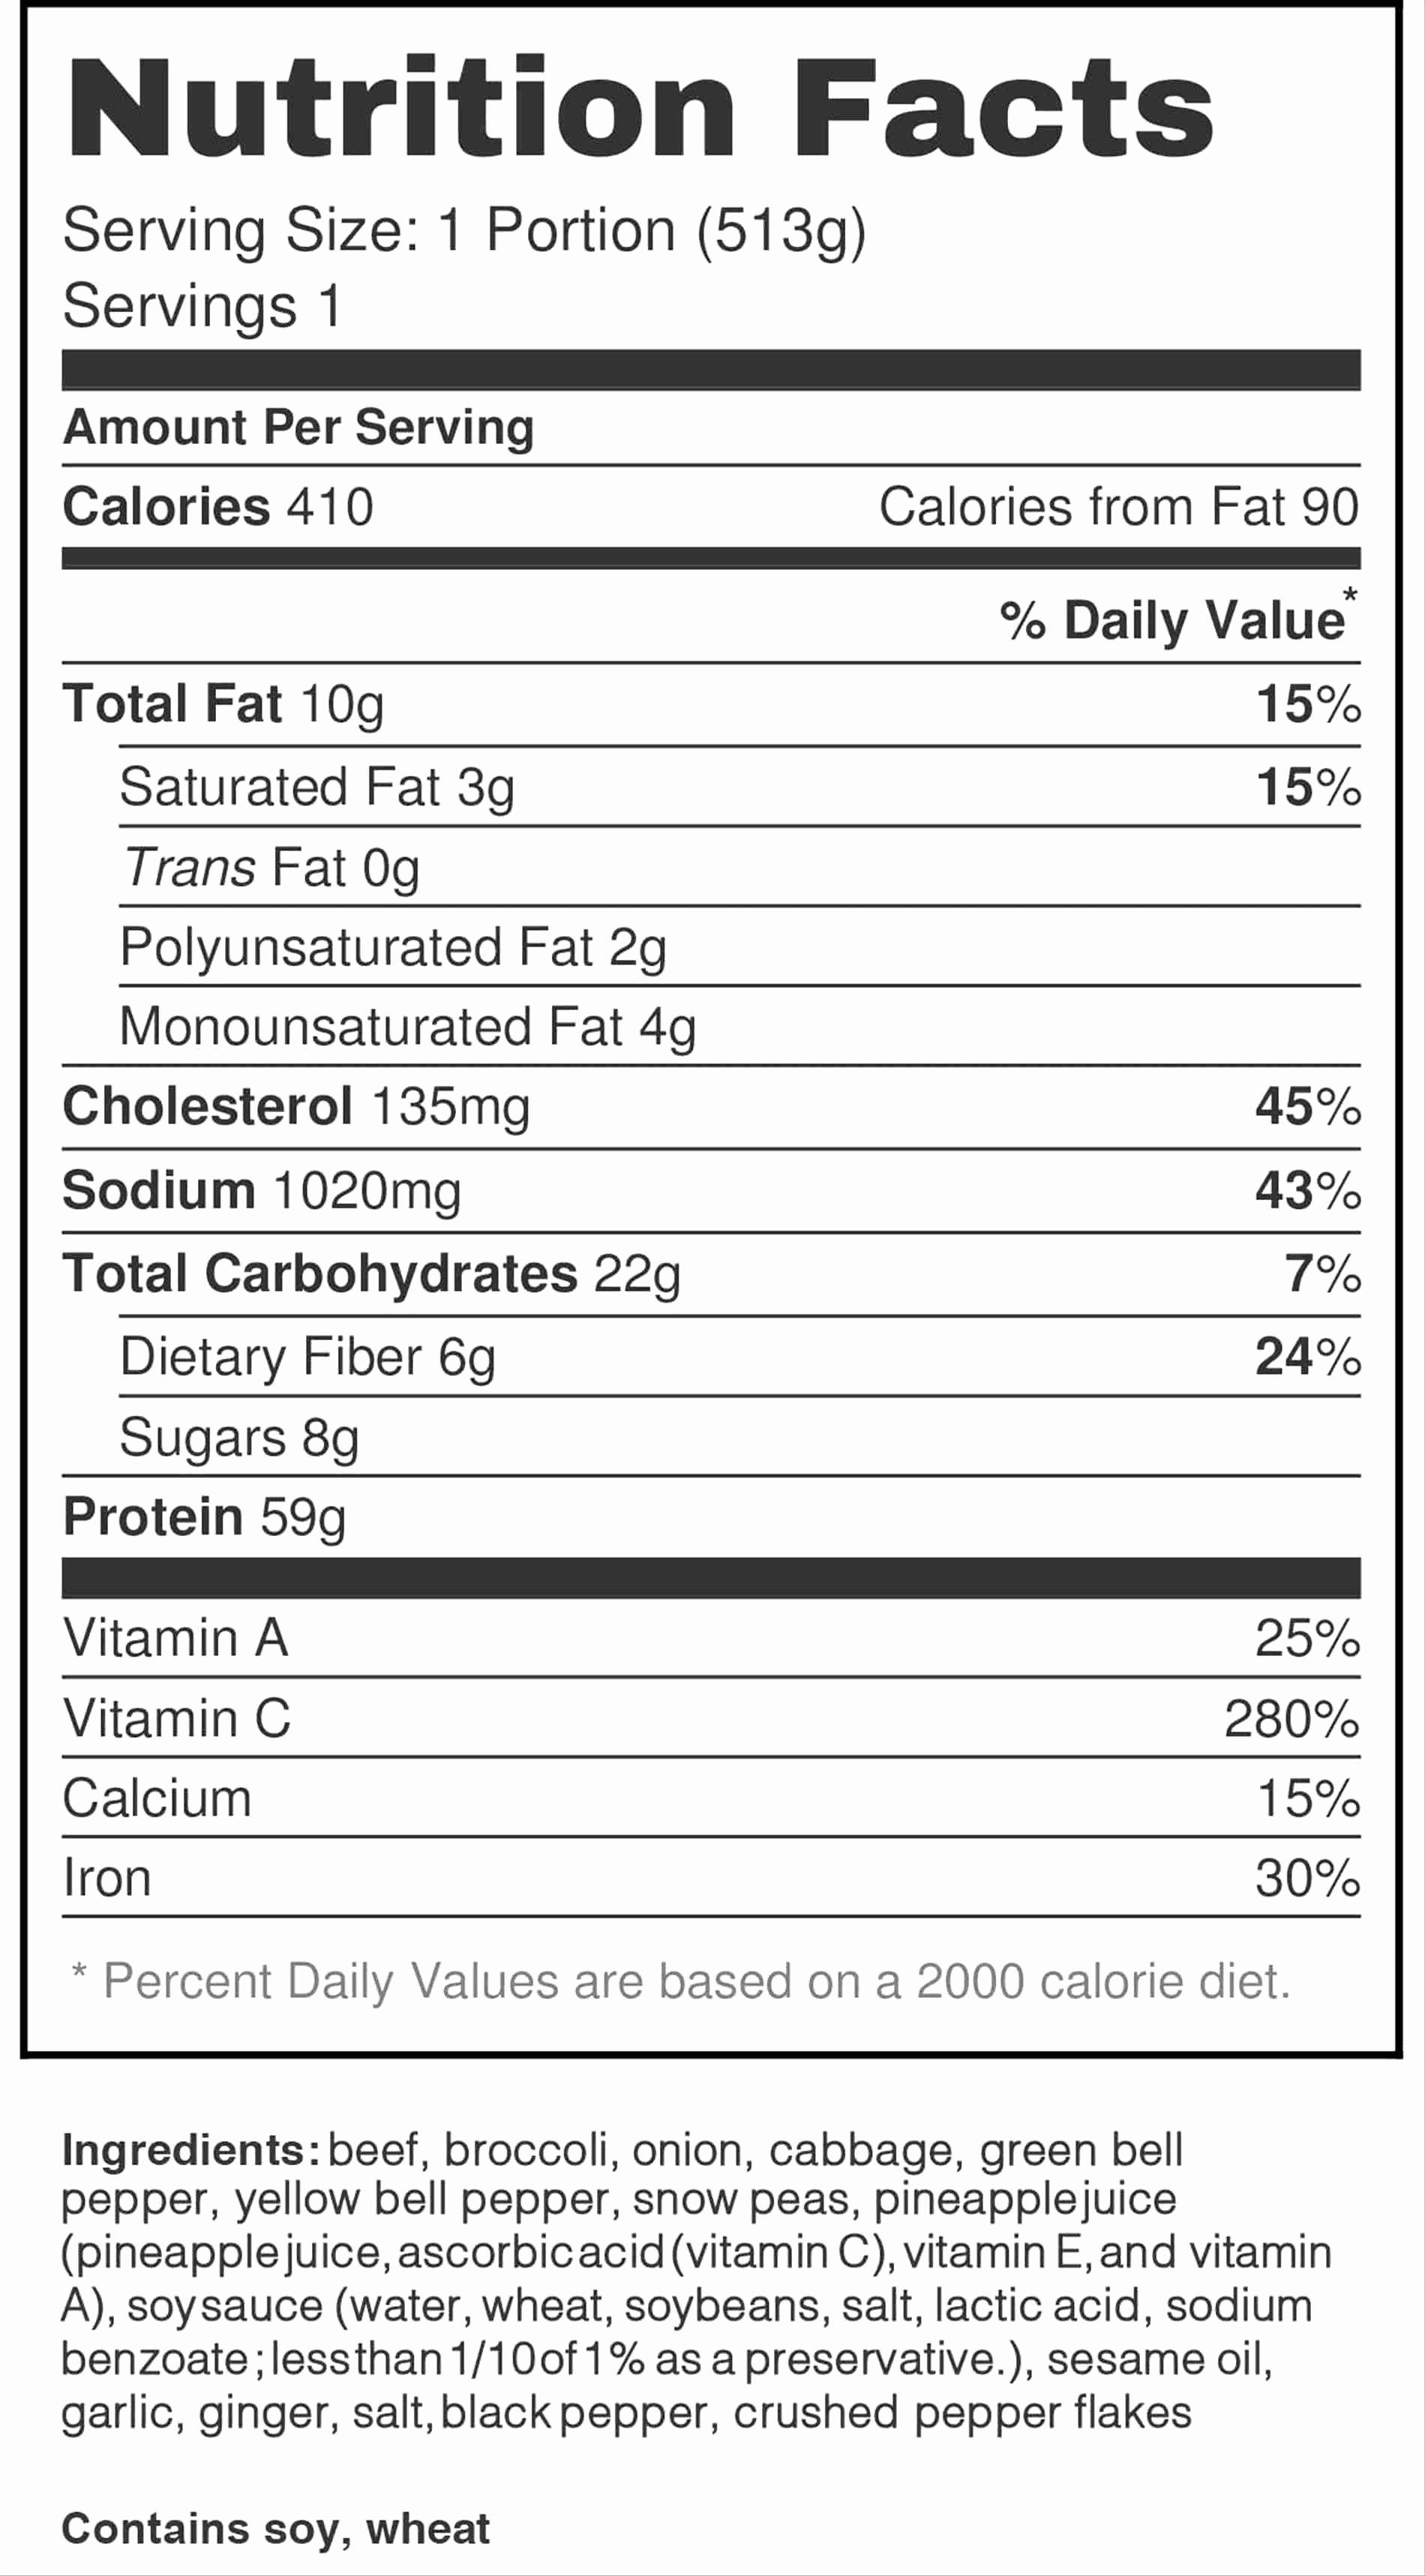 Nutrition Facts Label Template Excel Inspirational Nutrition Label Template Excel Hola Klonec Nutrition Facts Label Food Label Template Nutrition Labels Nutrition facts label template excel